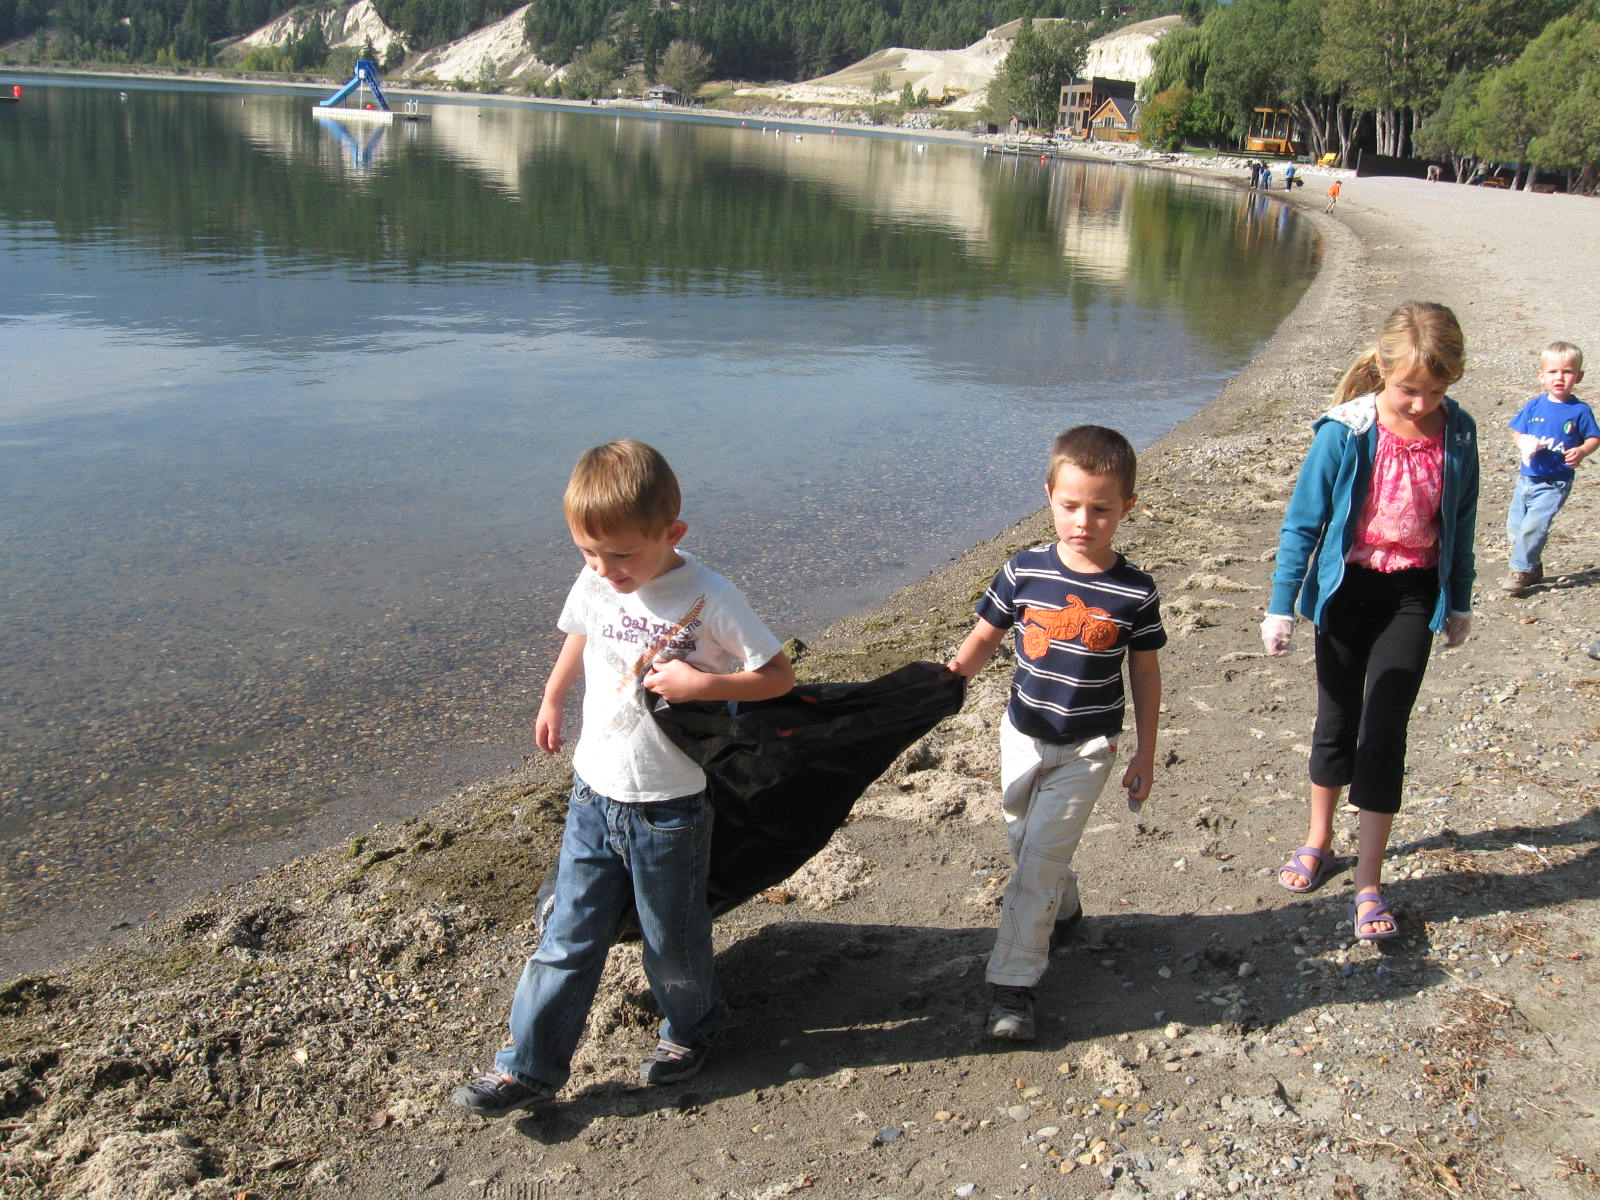 Shoreline Clean-up September 21st